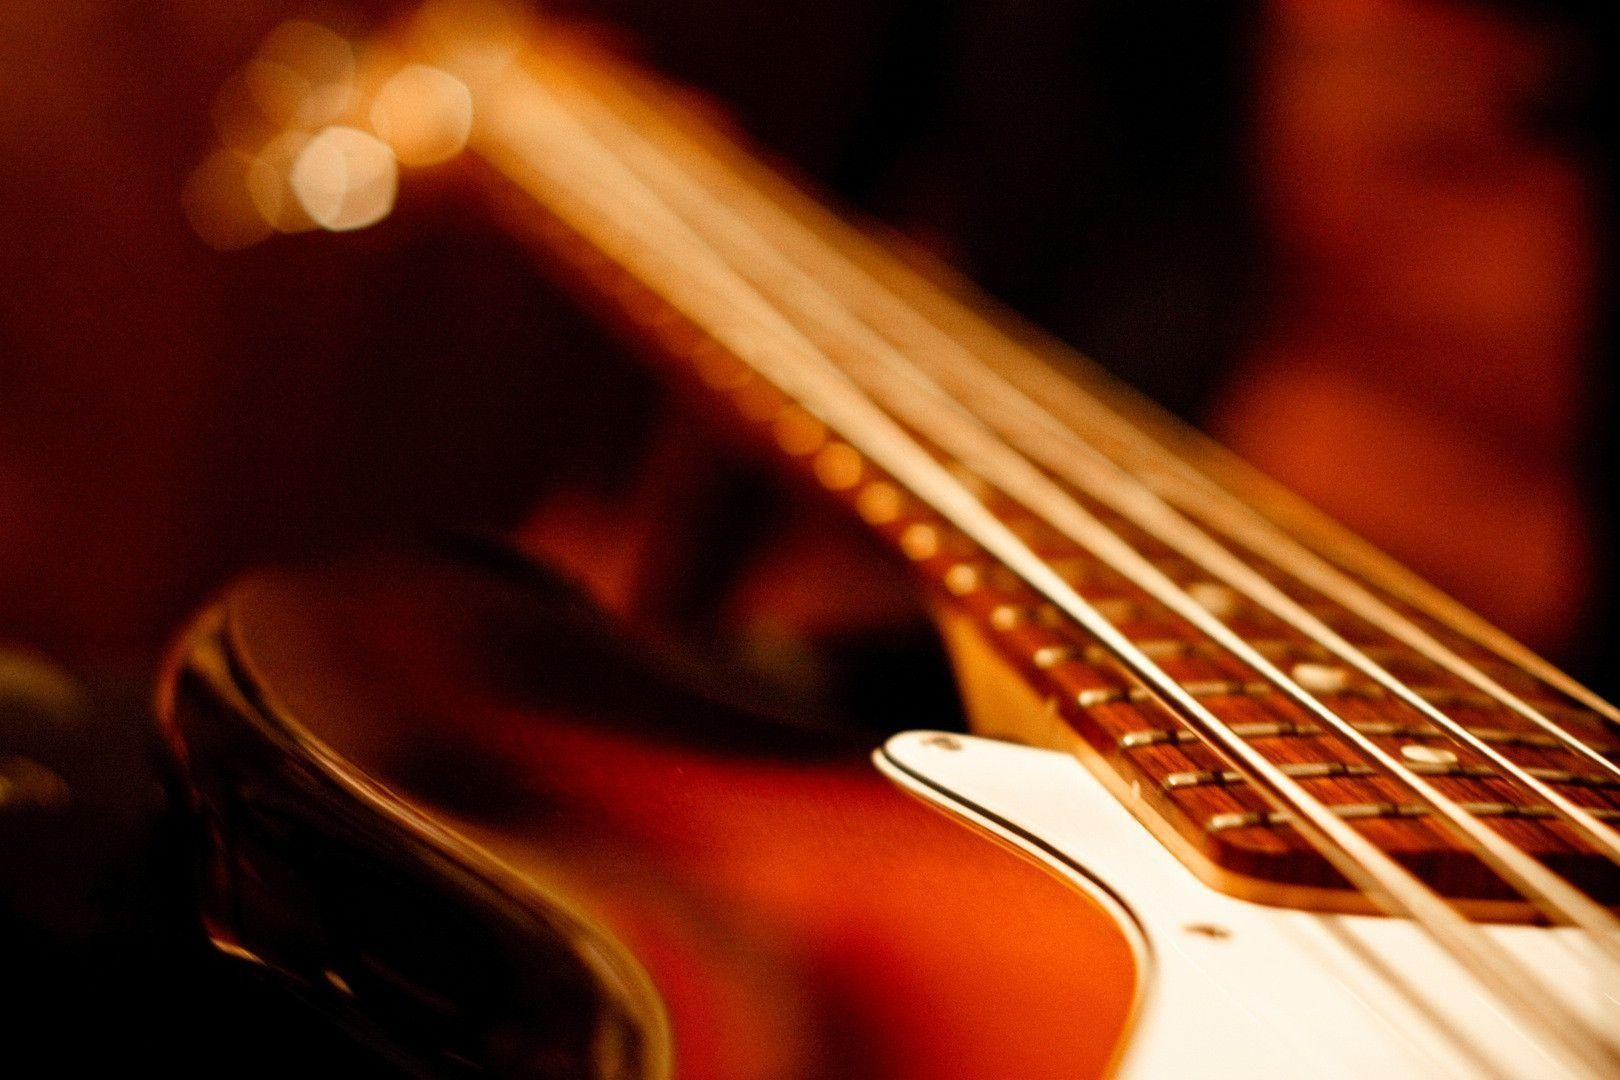 Remarkable Bass Guitar Wallpapers Hd 1920x1280PX ~ Bass Wallpapers #